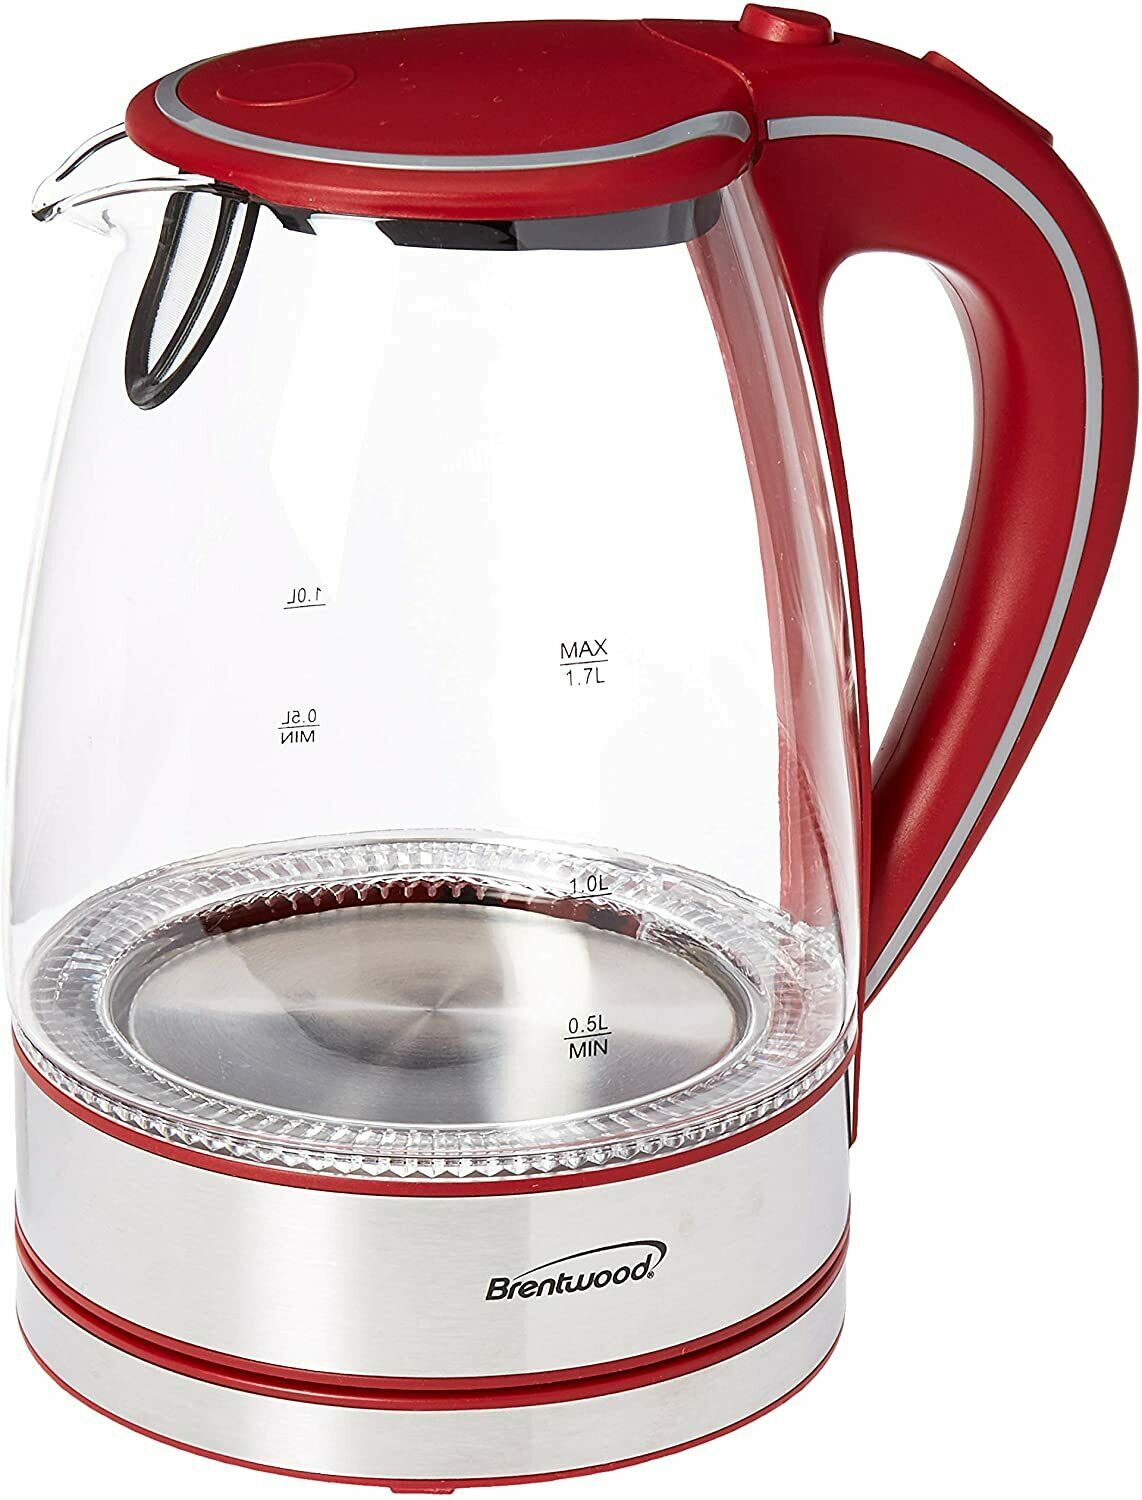 Brentwood 1.7-Liter Cordless Tempered-Glass Electric Kettle (Red)